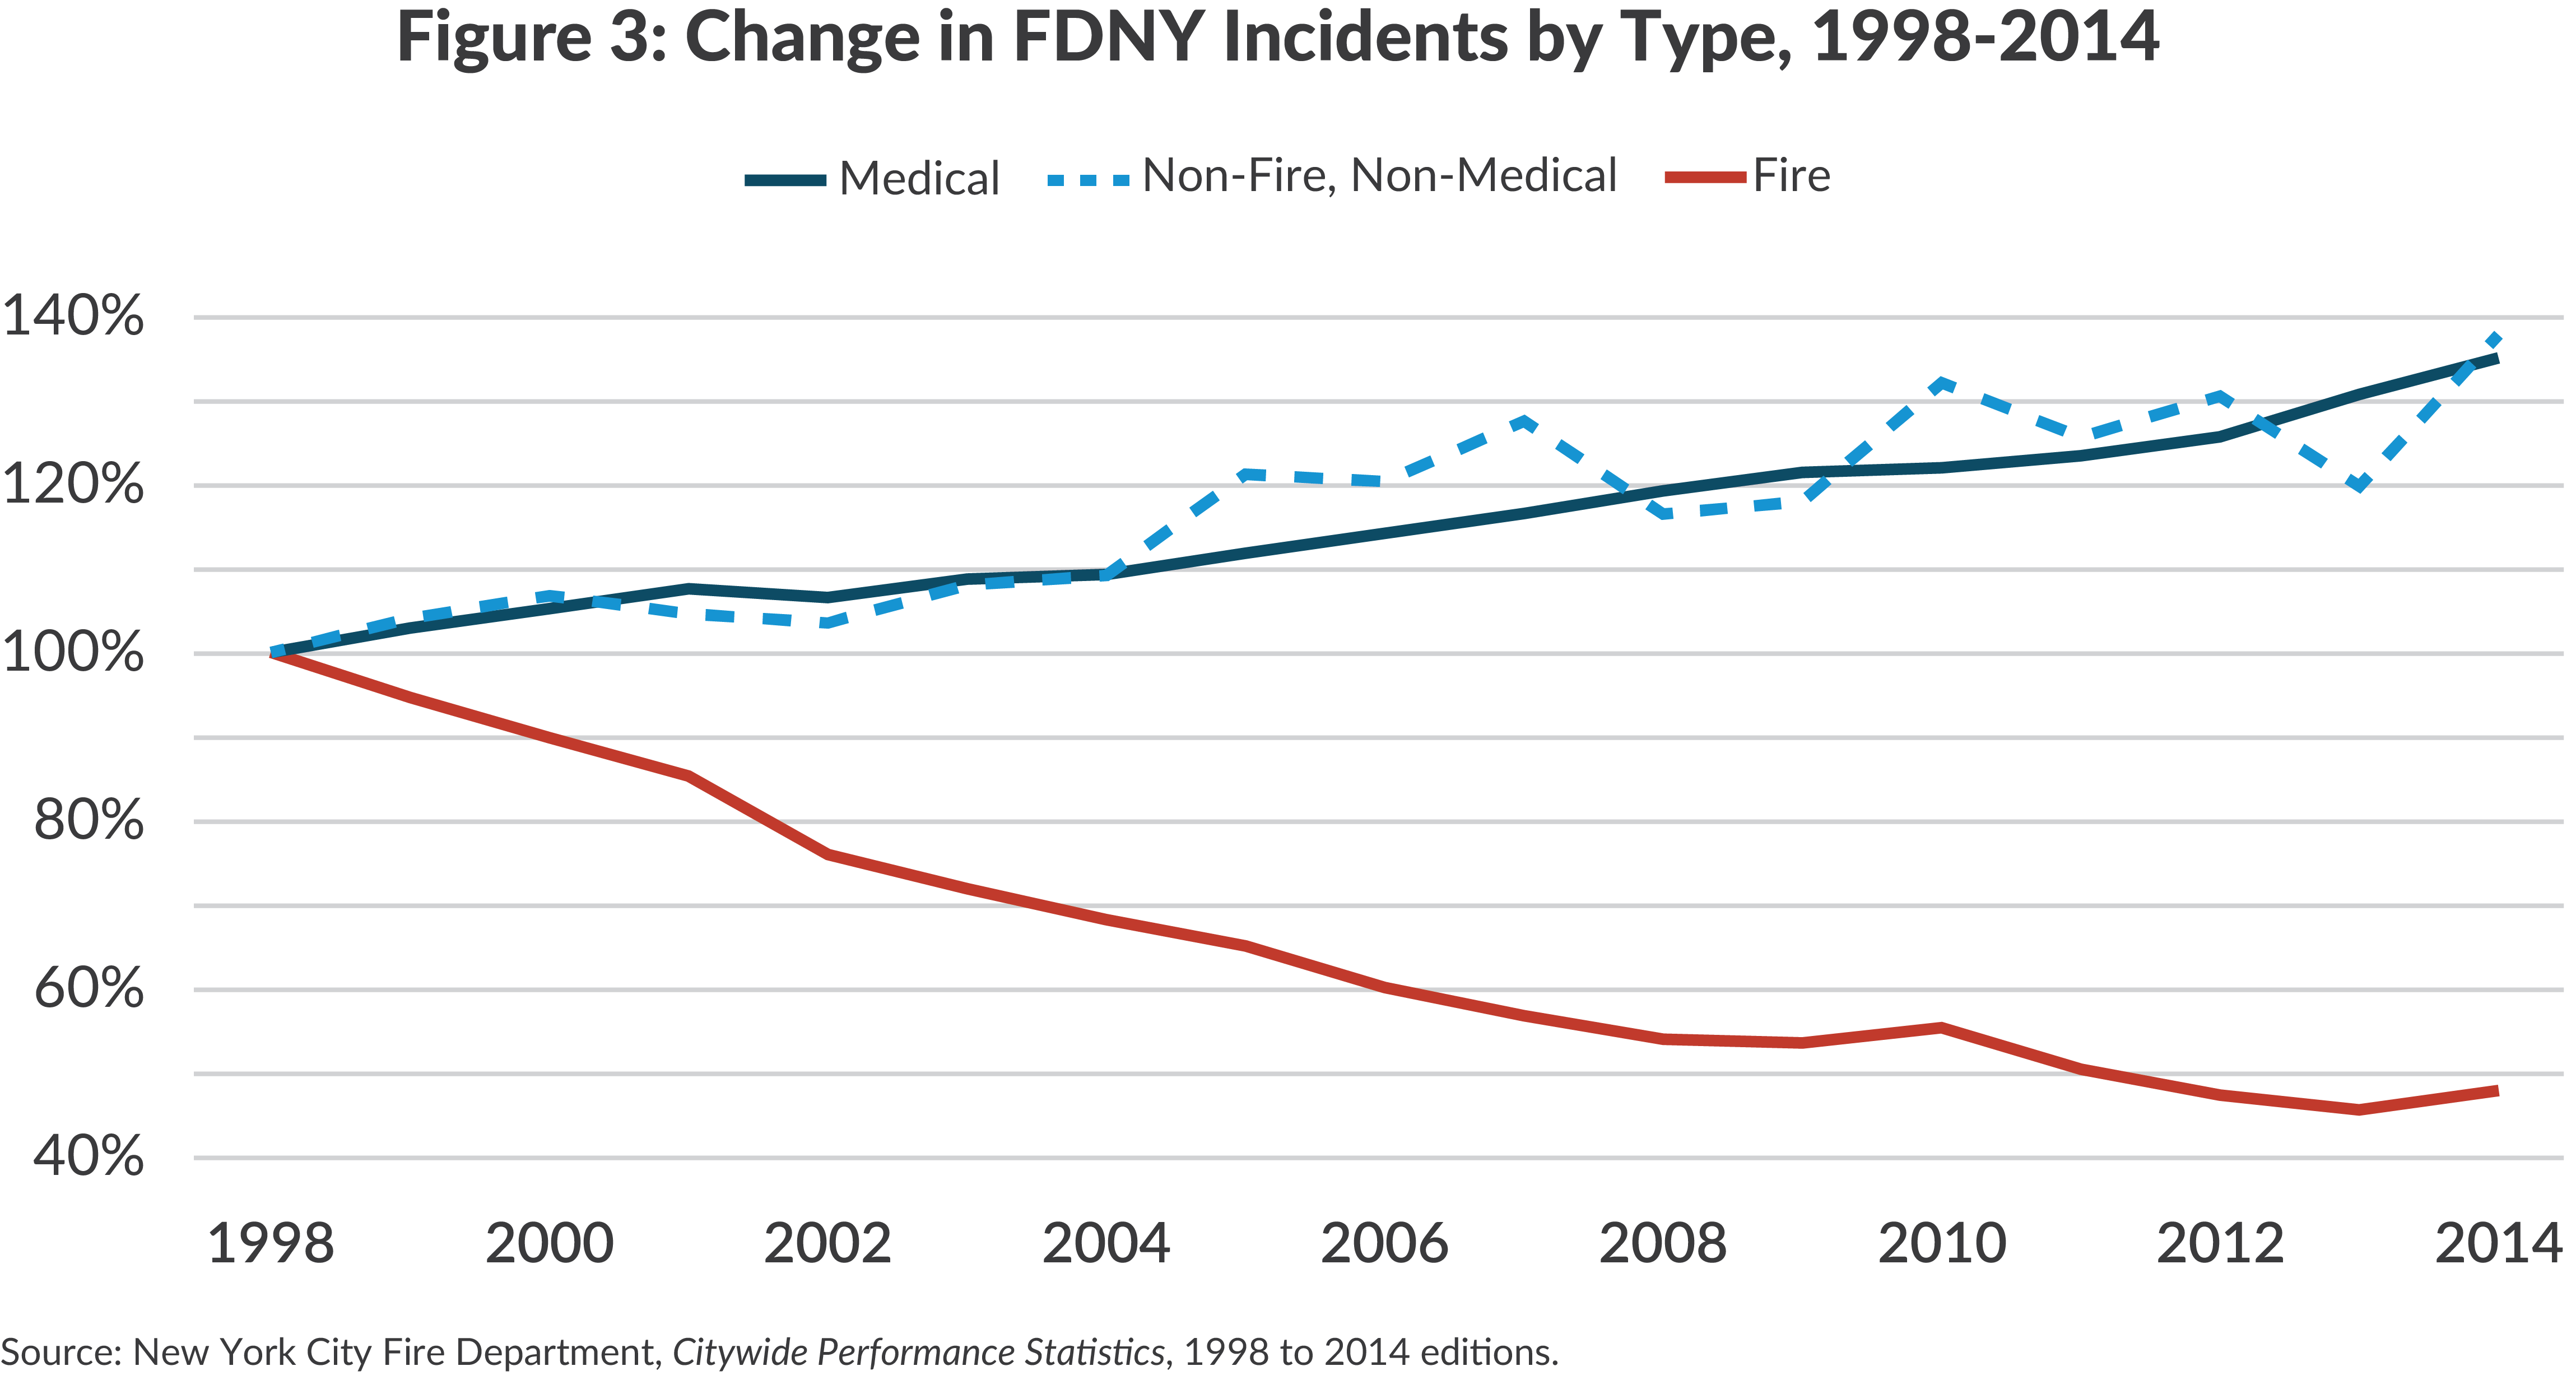 Figure 3: Change in FDNY Incidents by Type, 1998-2014